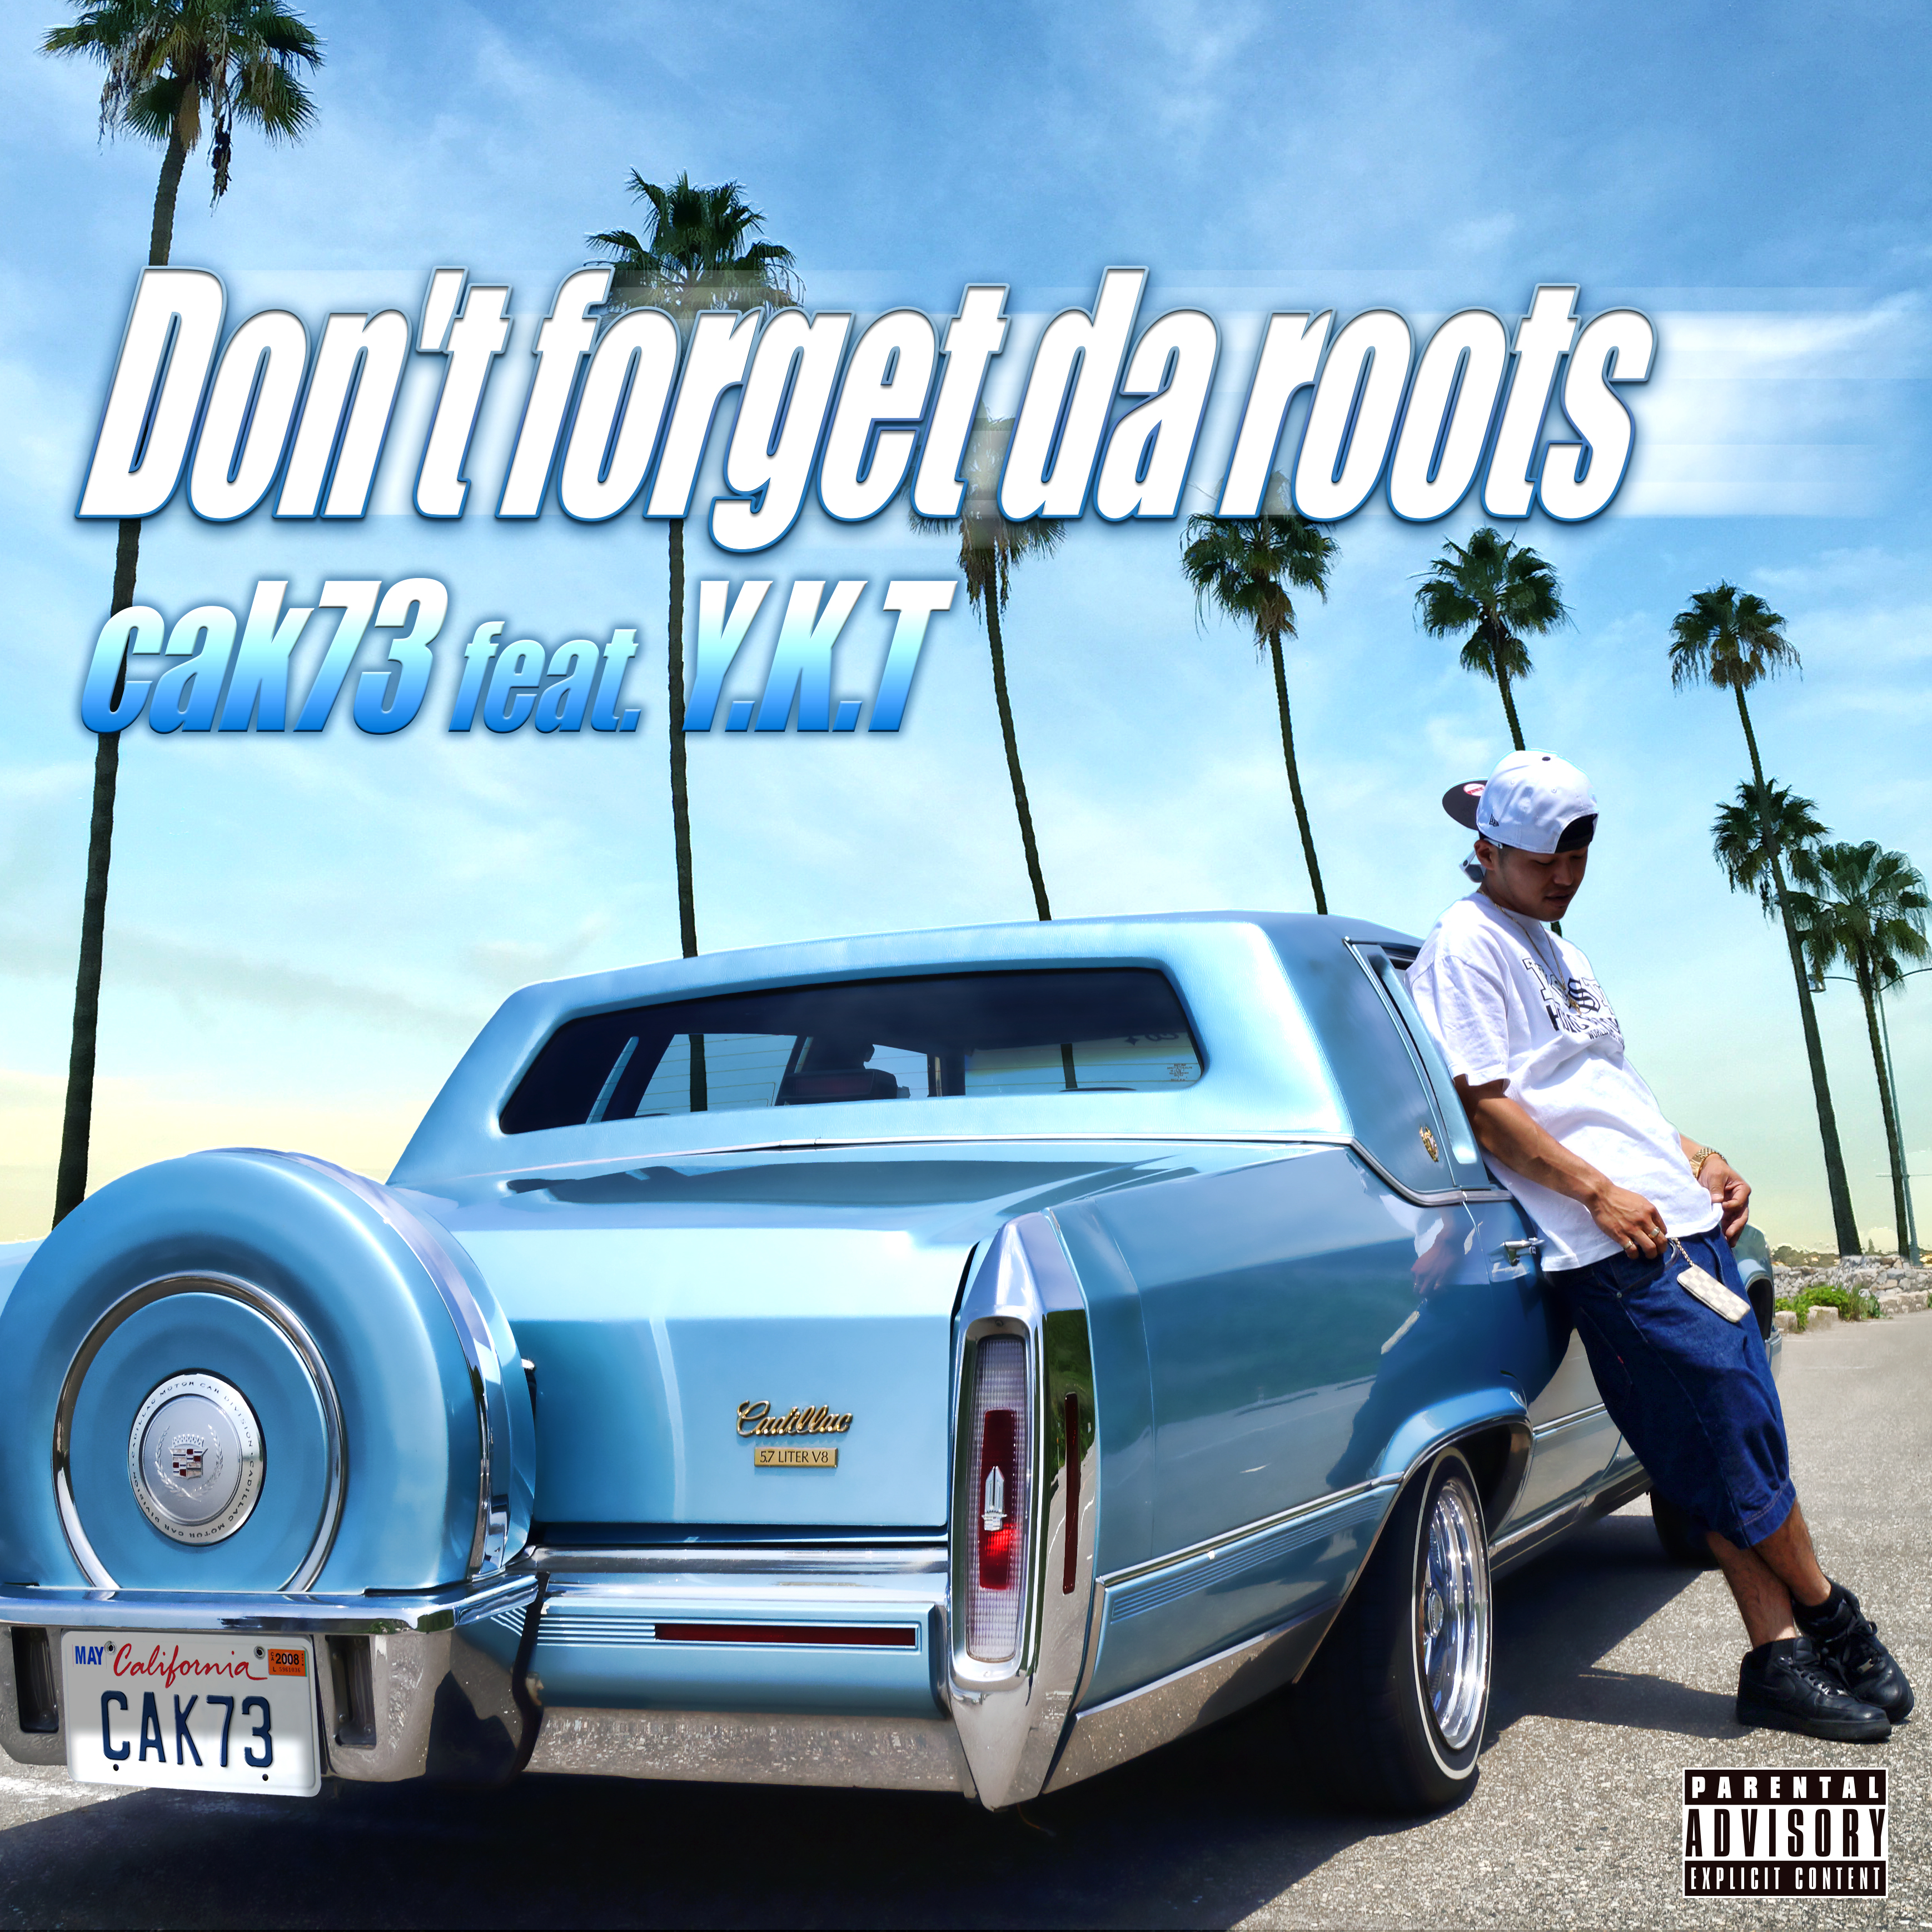 cak73「Don't forget da roots feat. Y.K.T」